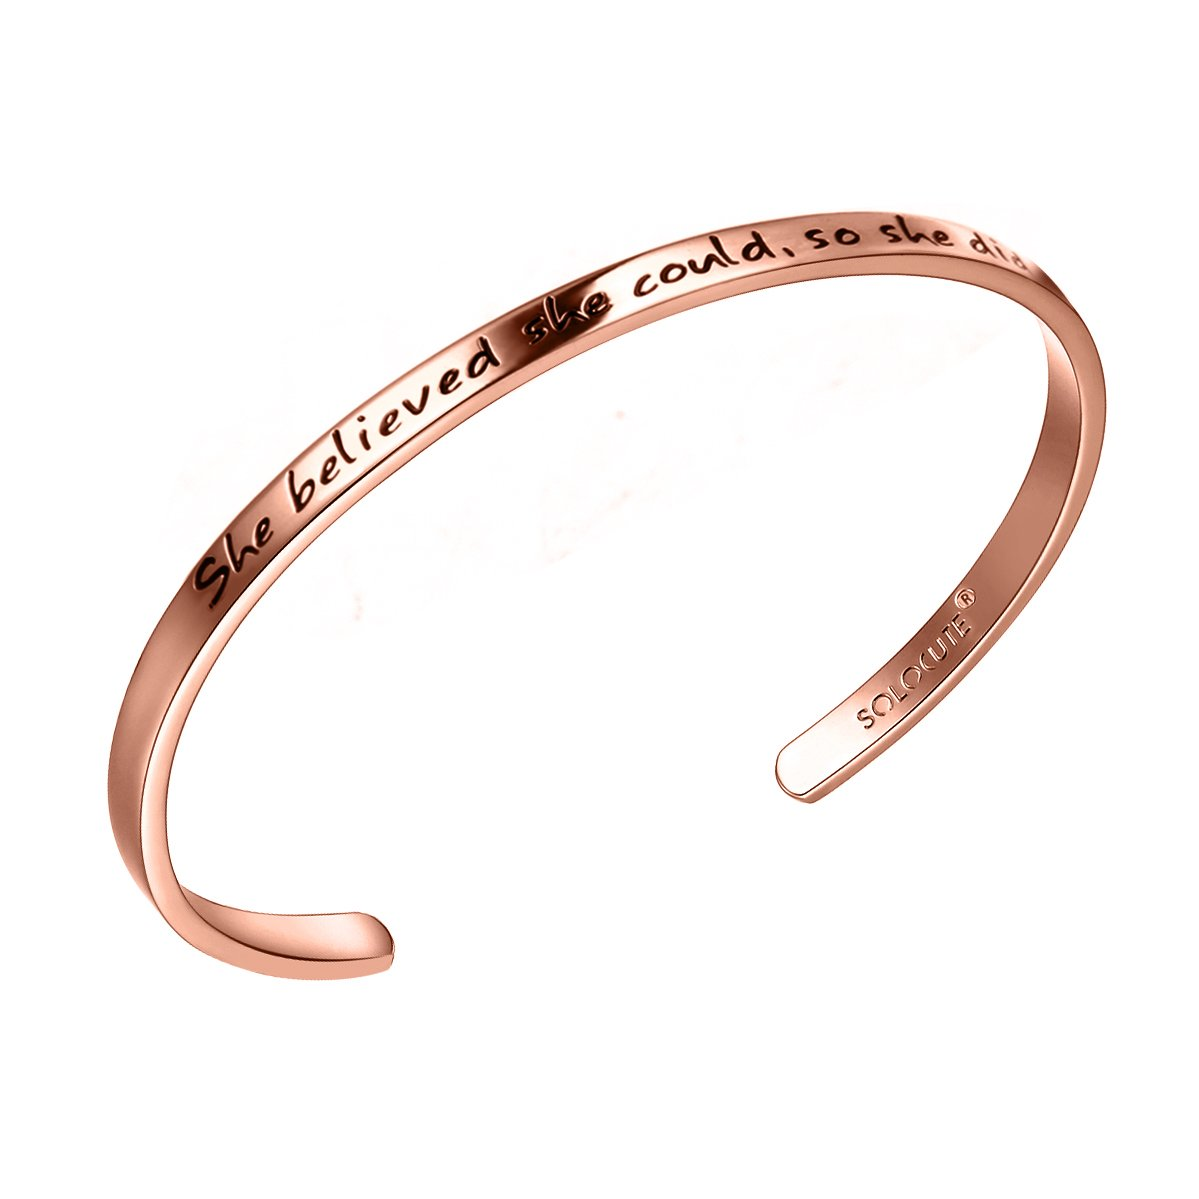 SOLOCUTE Rose Gold Cuff Bangle Bracelet Engraved ''She believed she could so she did'' Inspirational Jewelry, Perfect Gift for Christmas Day, Thanksgiving Day and Birthday